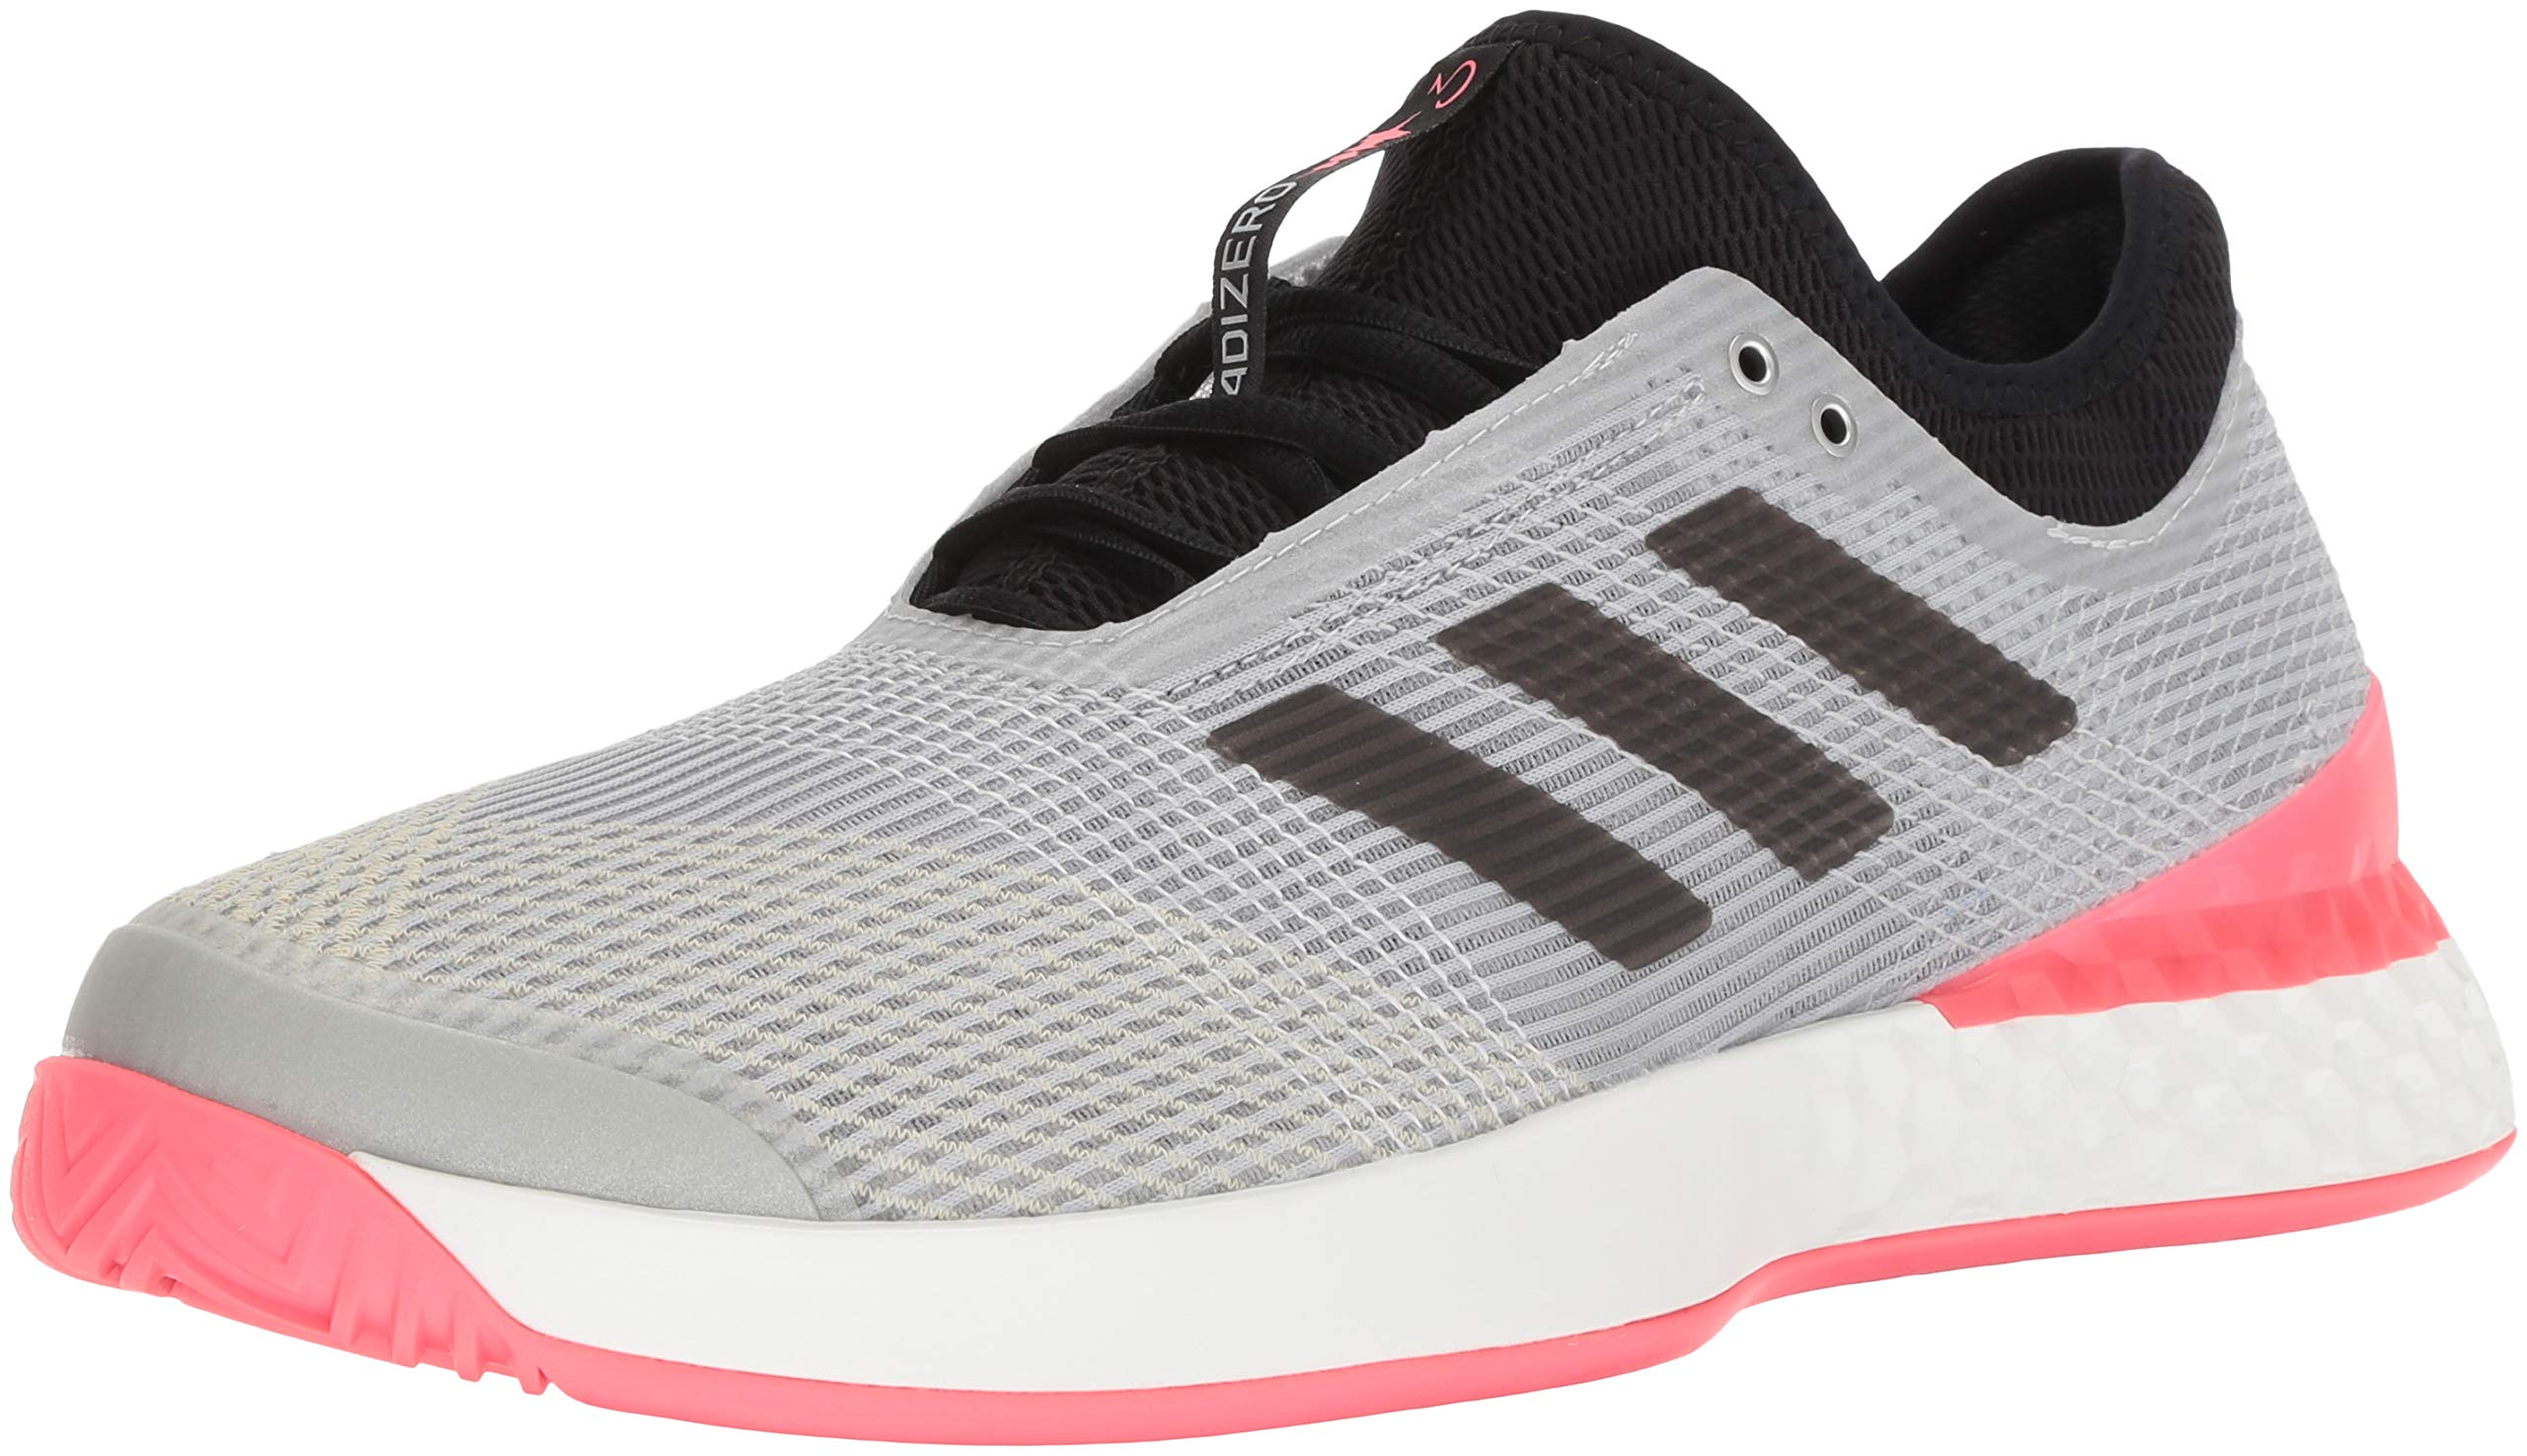 info for 5977b a678f Galleon - Adidas Mens Adizero Ubersonic 3 Tennis Shoe, Matte SilverBlackFlash  Red, 7.5 M US